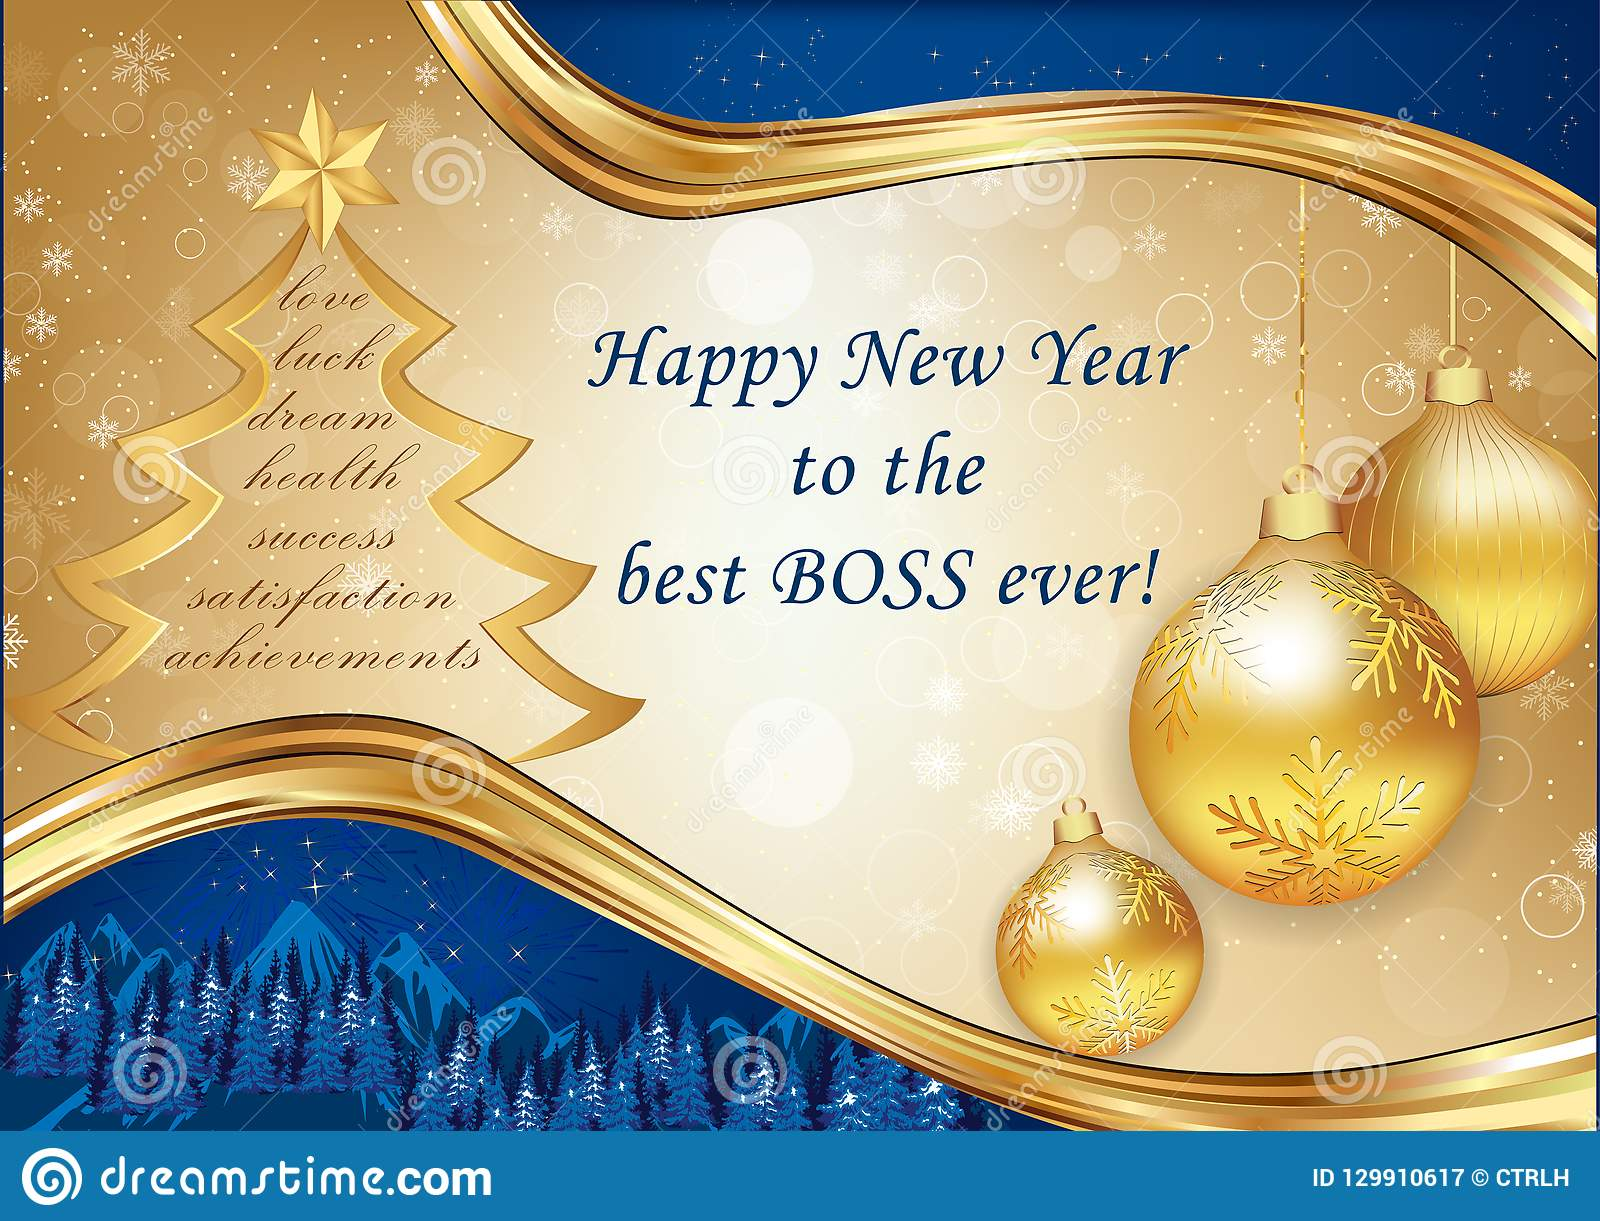 Corporate Christmas And New Year Greeting Card For The ...